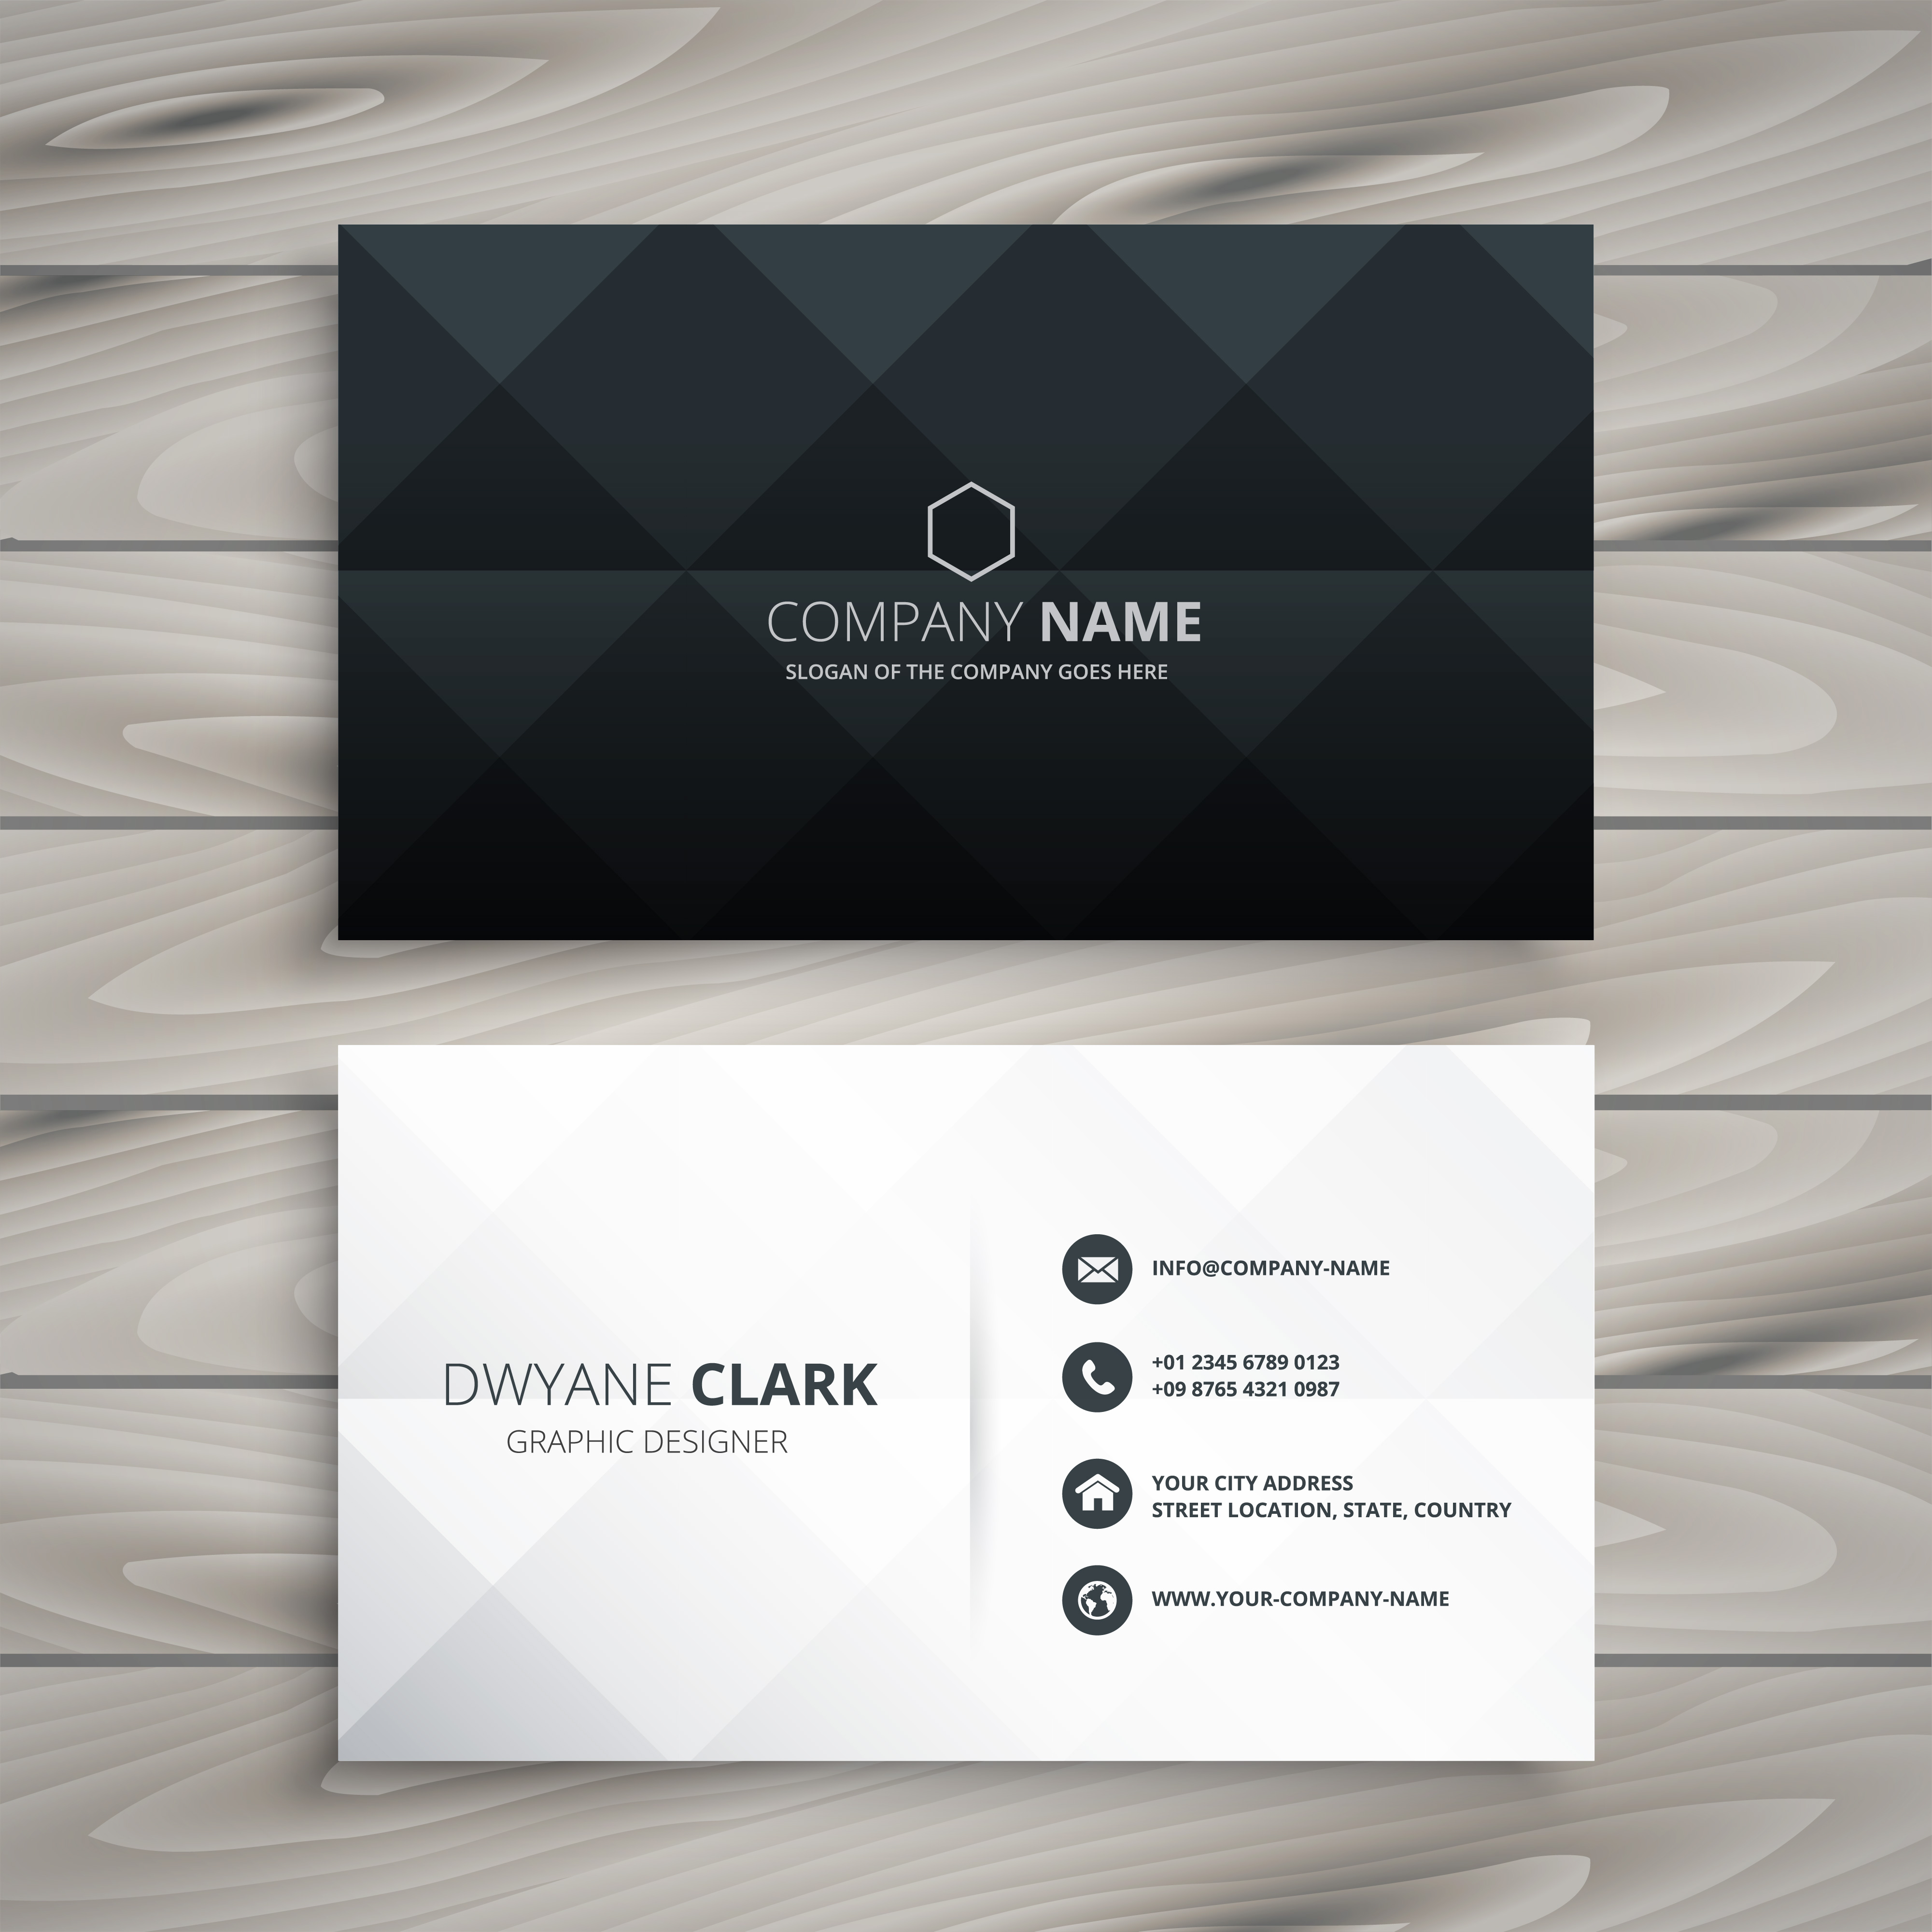 Modern White And Gray Bedroom Ideas: Modern Black And White Business Card Design